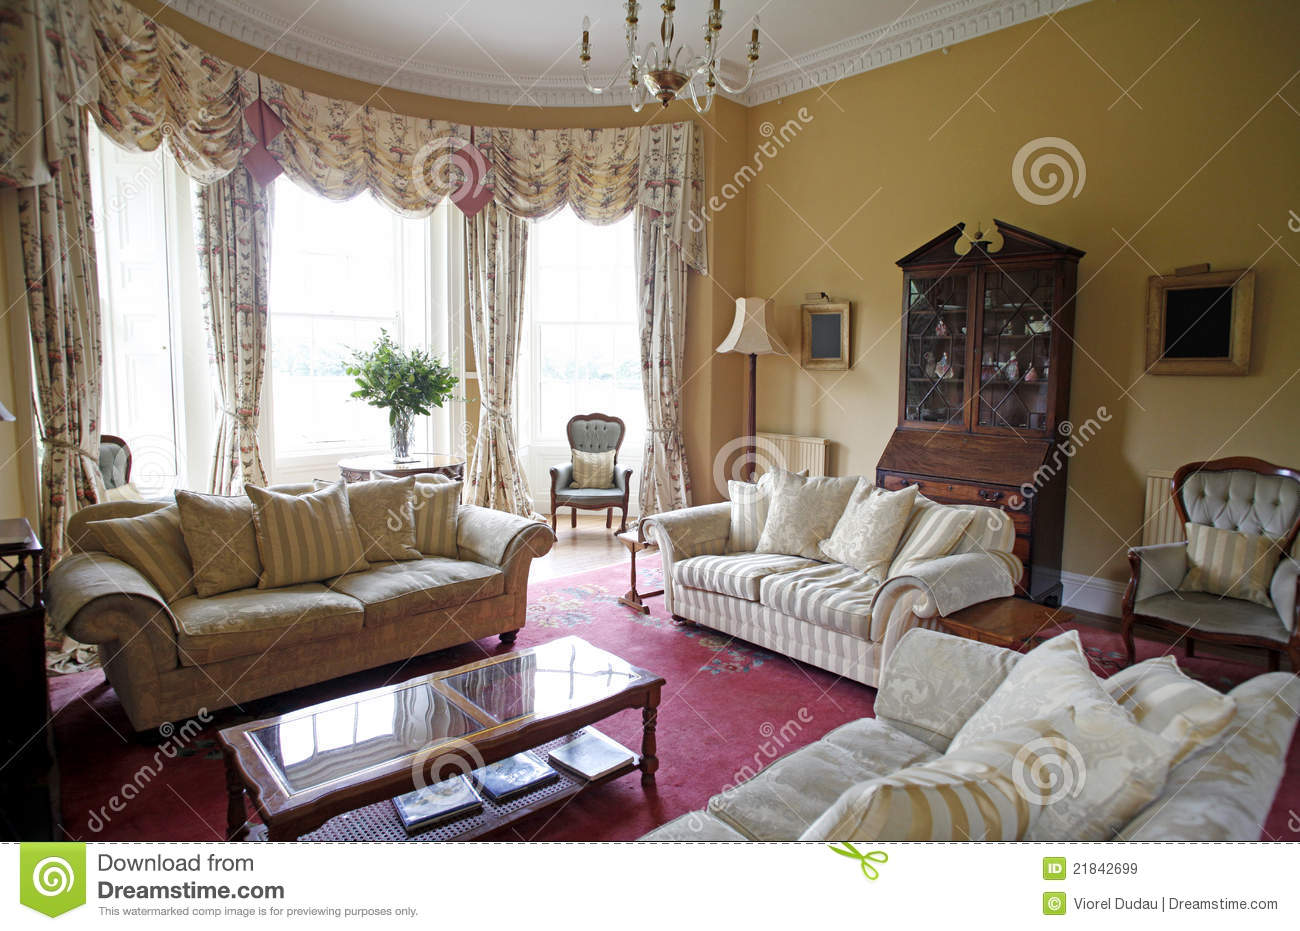 old fashioned bedroom chairs loveseat lawn chair living room royalty free stock images